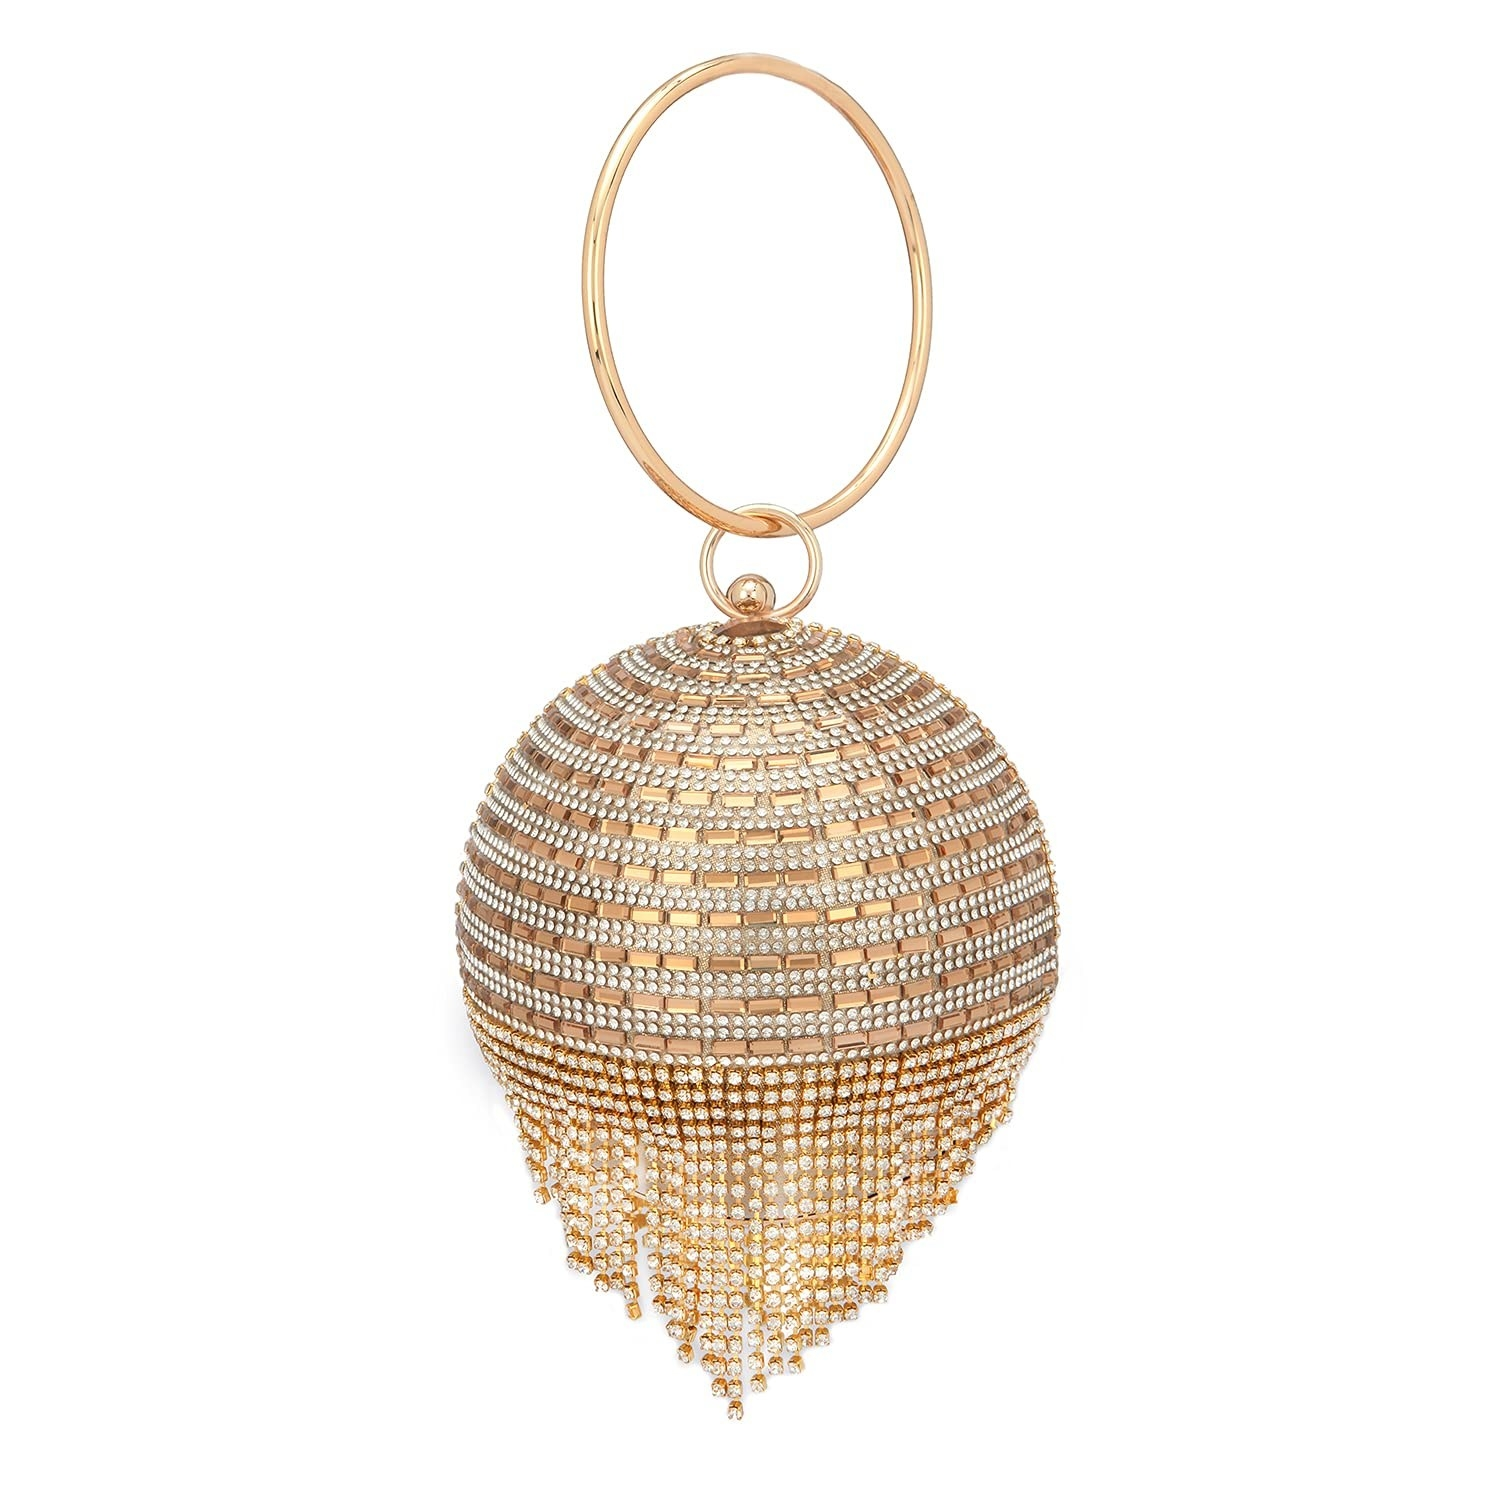 A ball clutch with tassels on the bottom